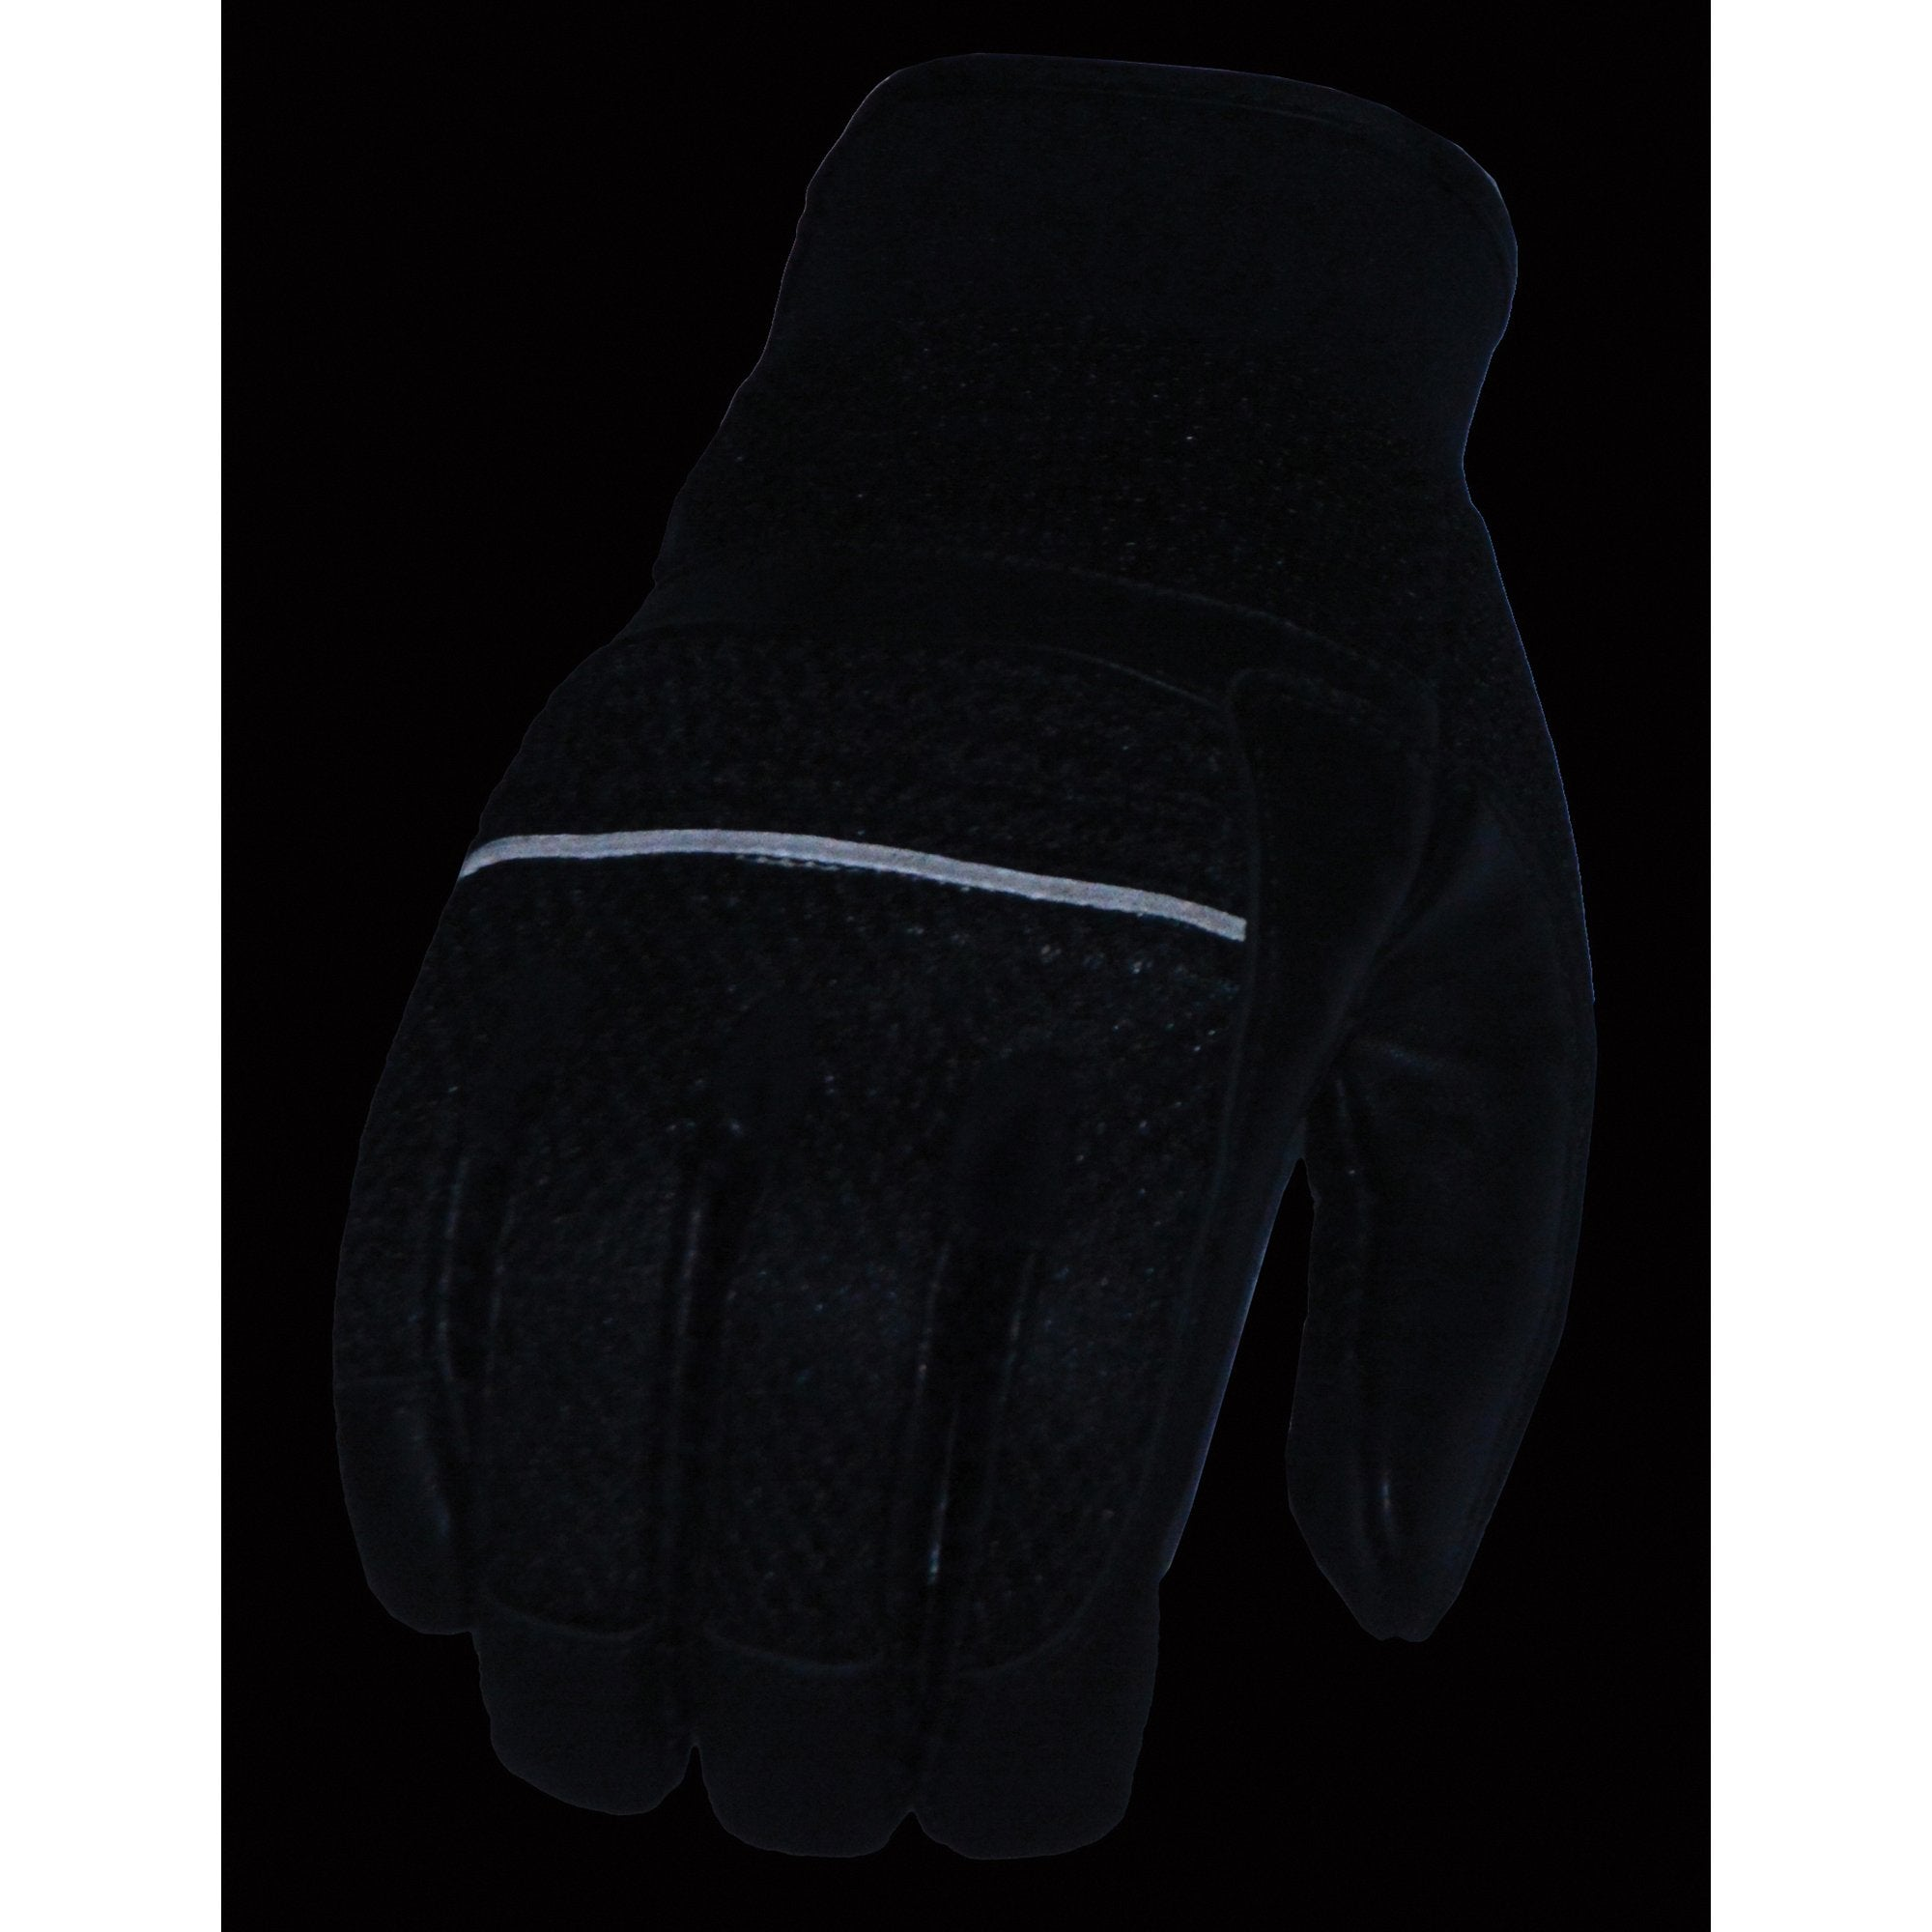 Milwaukee Leather MG7503 Men's 'Touch Screen Fingers' Black Leather